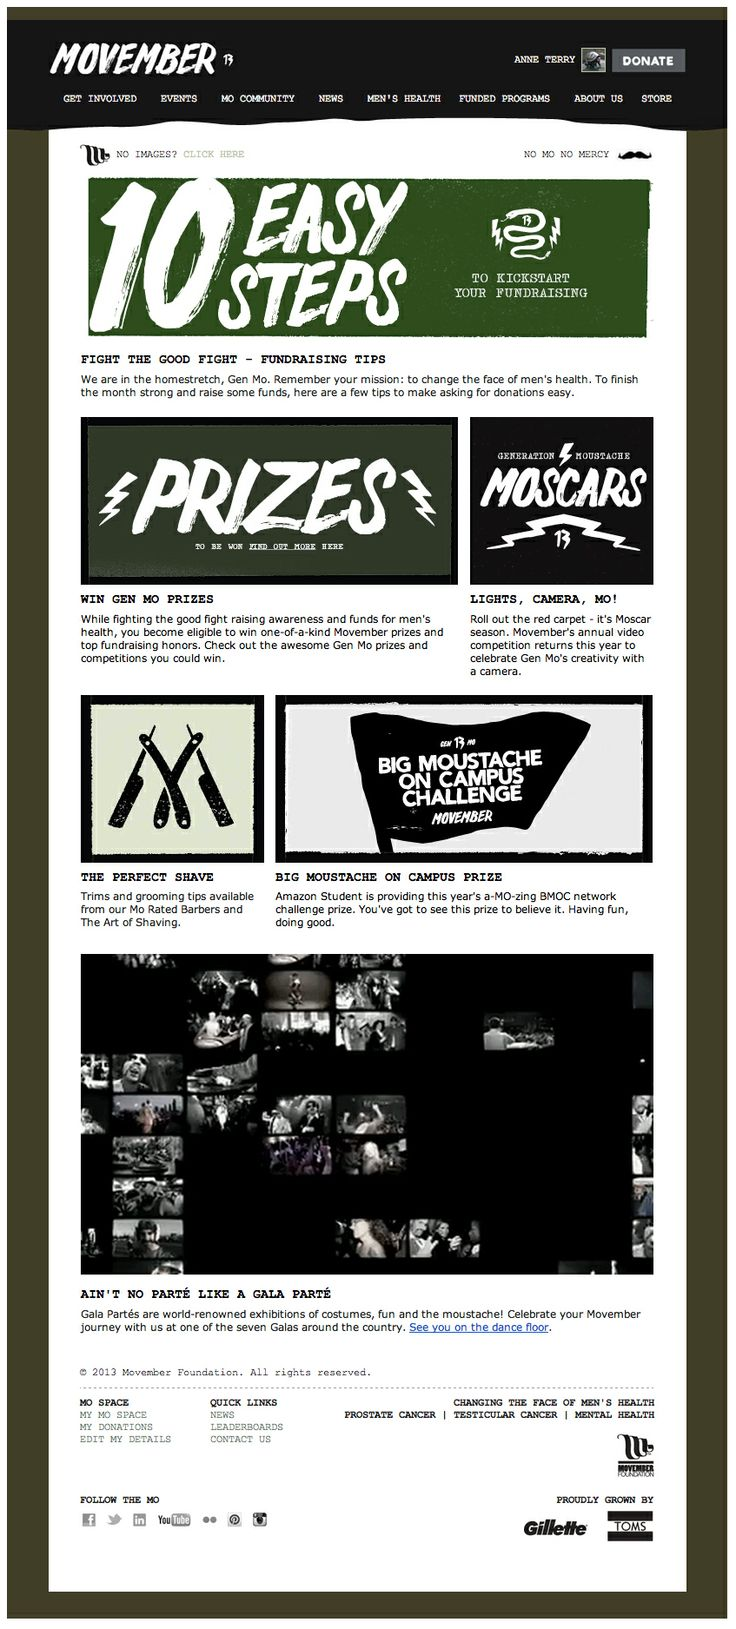 """Movember embedded a video clip with scenes from Movember Gala parties directly into this email campaign (above """"Ain't No Parté Like a Gala Parté""""). The video plays directly in the email, without the need to open in an external browser or media player. #emailmarketing #video #movember: Movember, External Browser, Gala Parties, Emailmarketing Video, Gala Parté, Email Inspiration"""